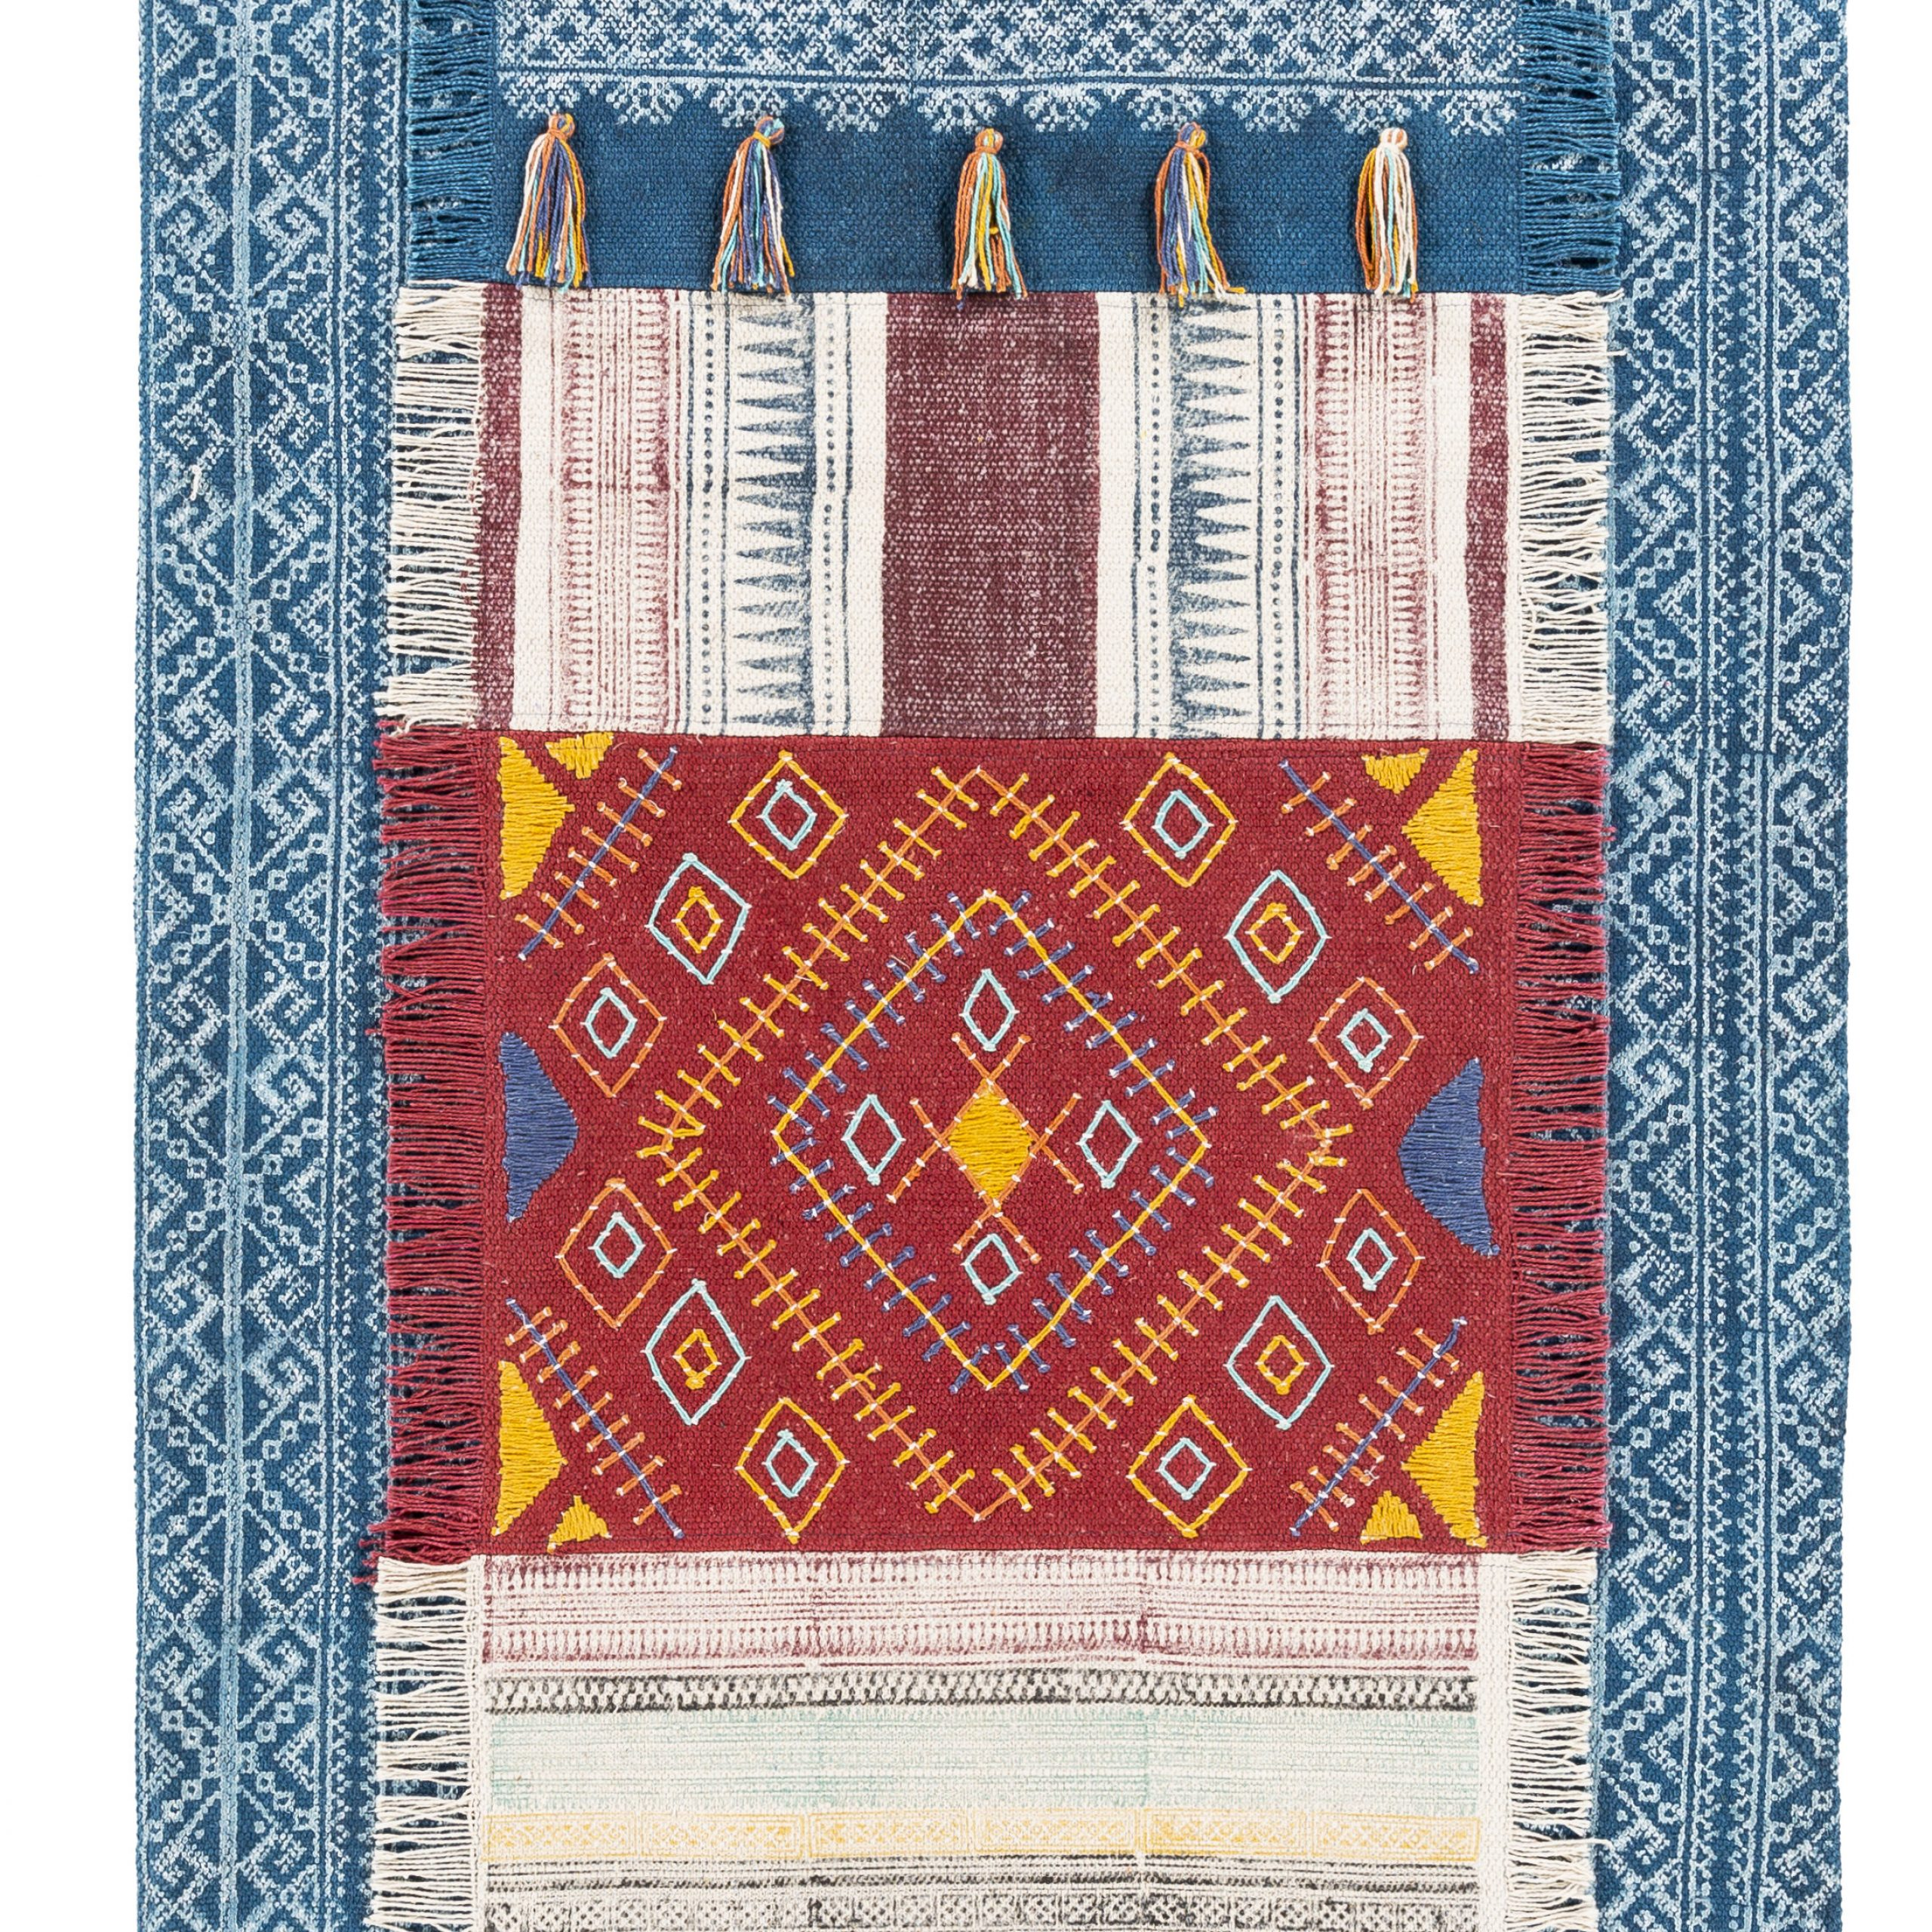 Ranier Wall Hanging With Hanging Accessories Included Throughout 2018 Blended Fabric Teresina Wool And Viscose Wall Hangings With Hanging Accessories Included (View 4 of 20)